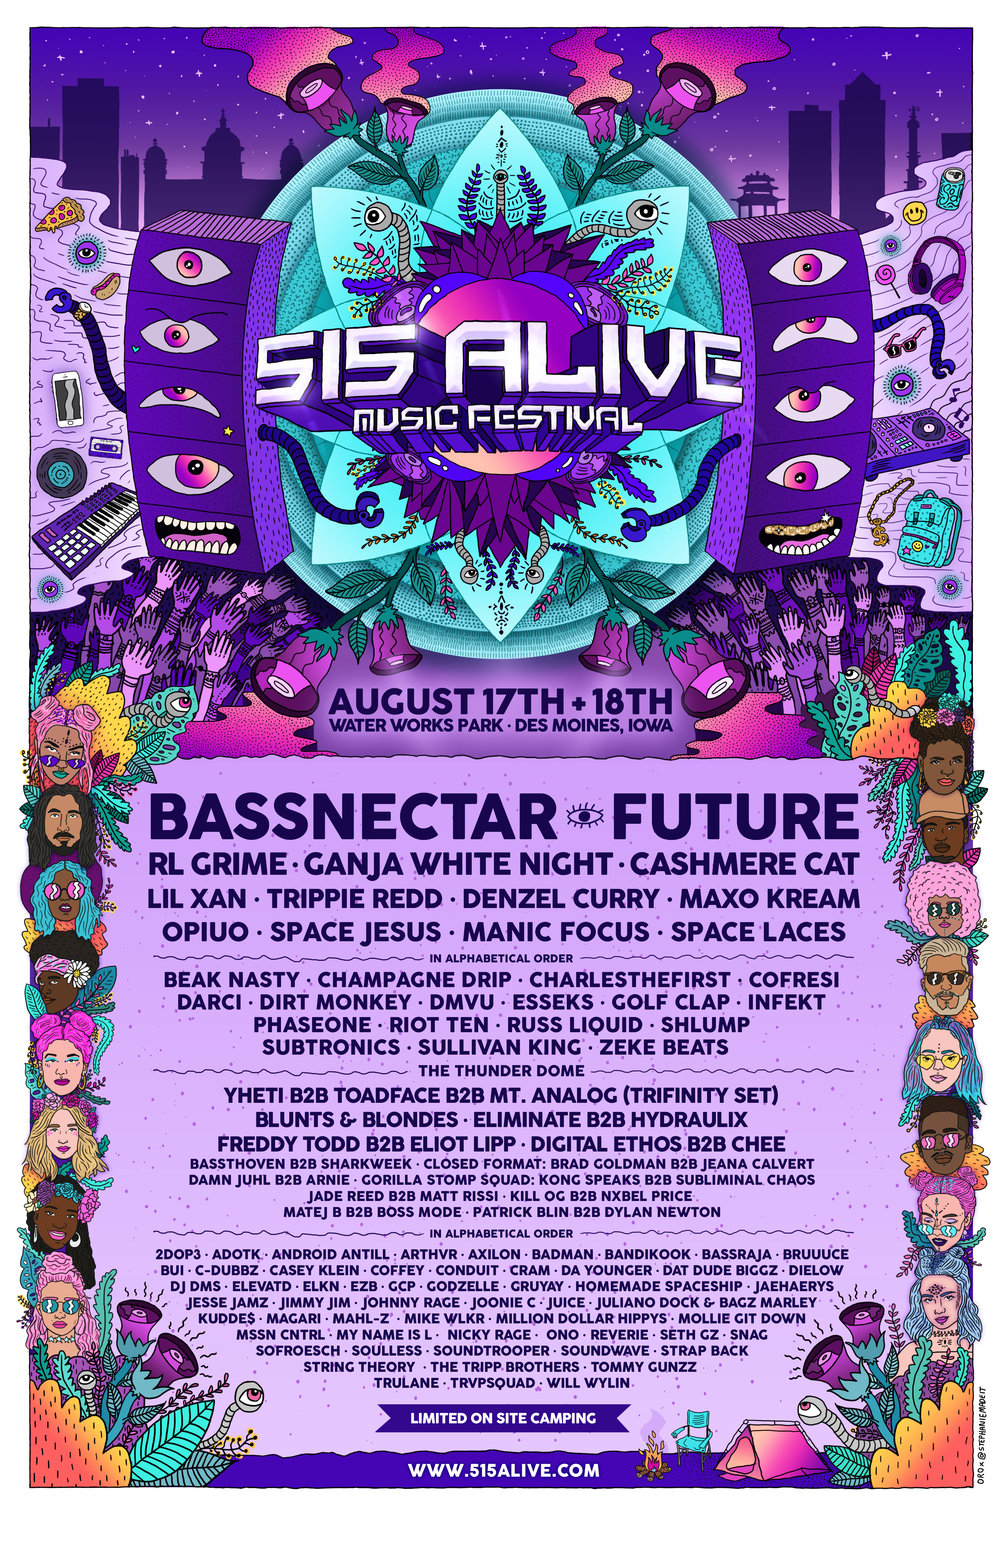 515 Alive Music Festival Lineup